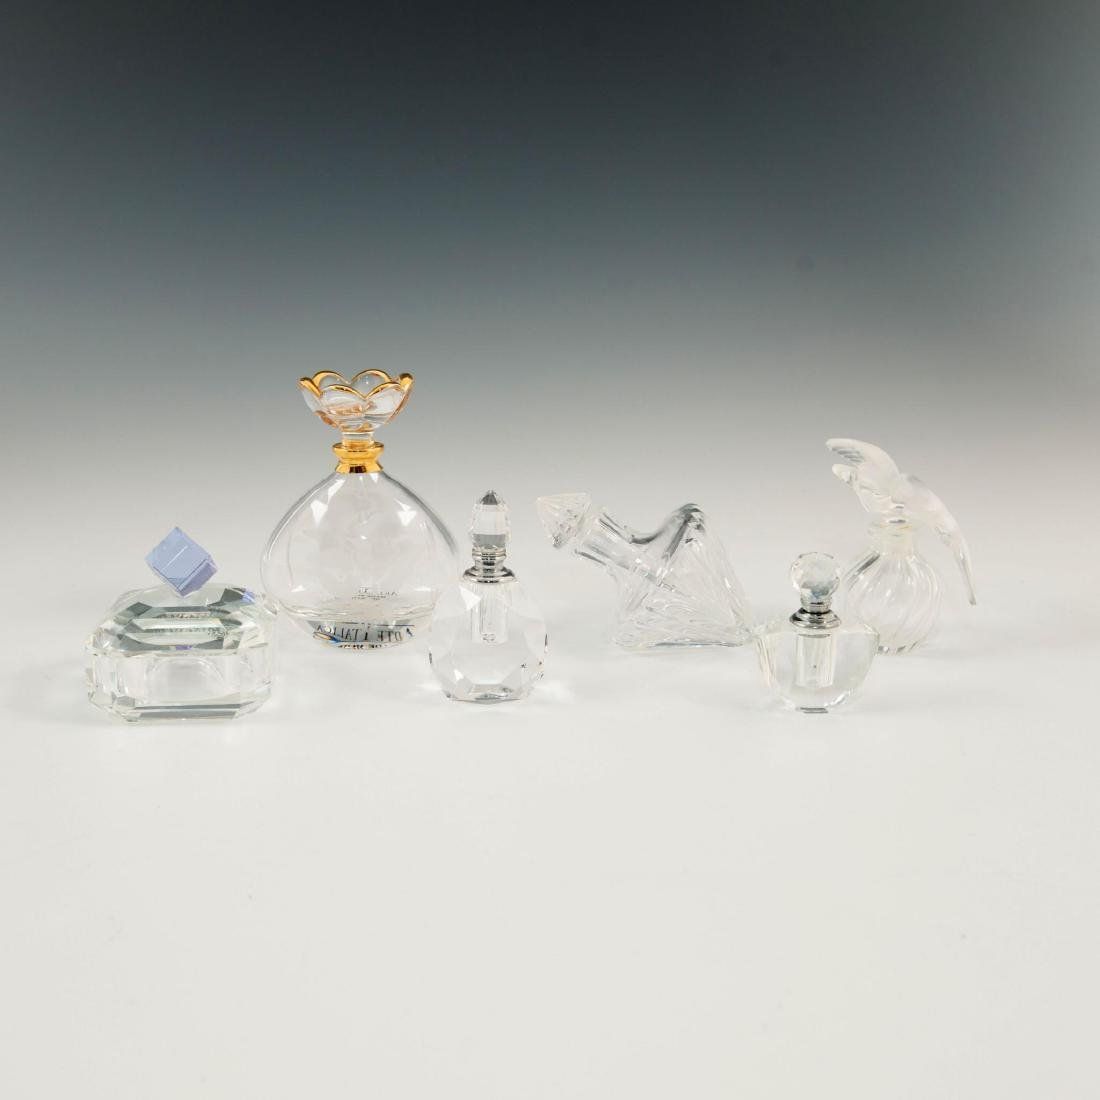 GROUP OF 12 CRYSTAL ART GLASS PERFUME BOTTLES LALIQUE - 6